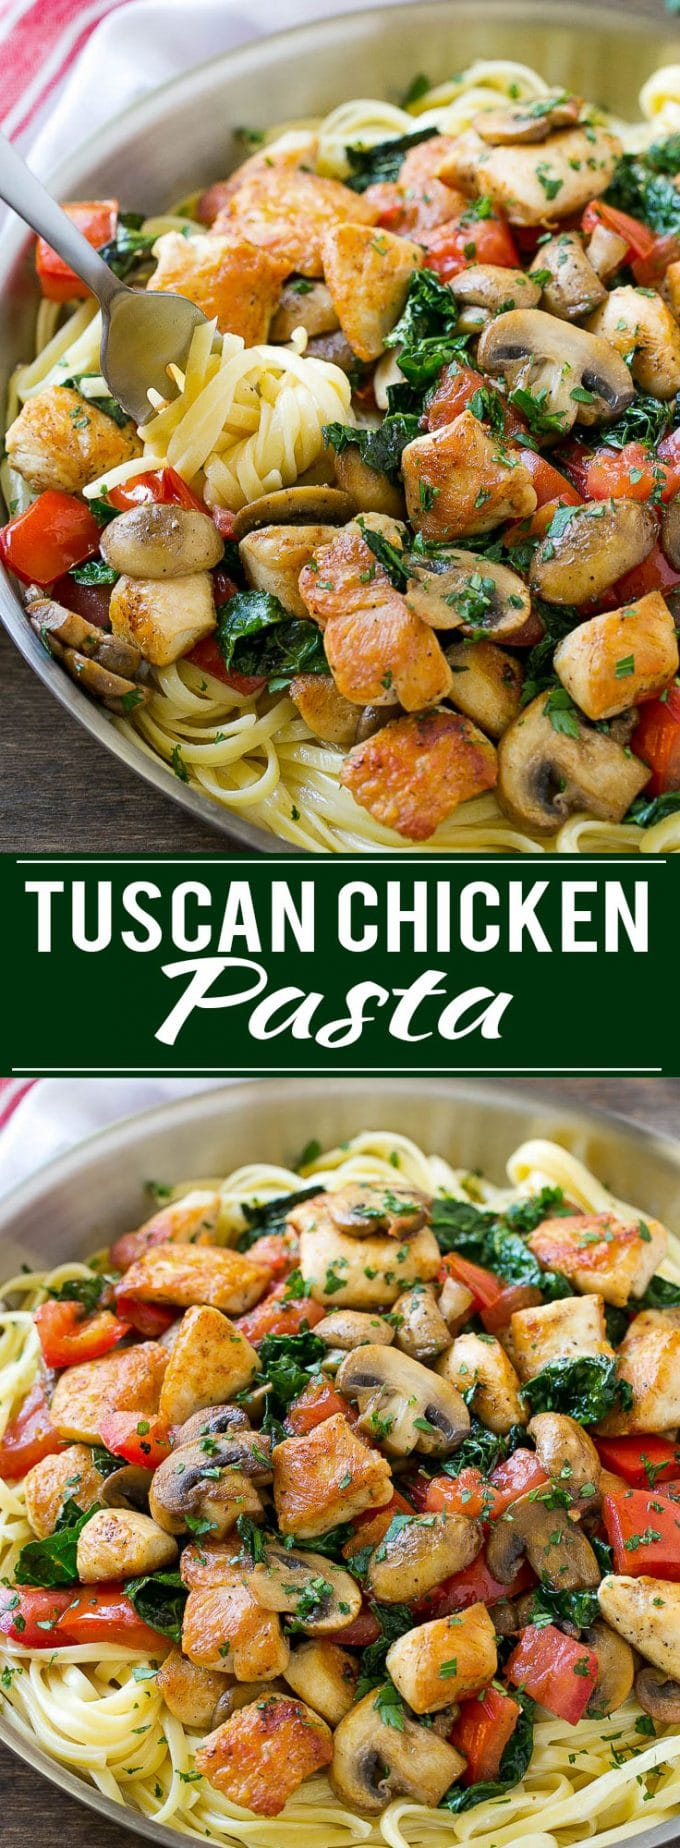 Tuscan Chicken Pasta Recipe | Creamy Chicken Pasta | Pasta Recipe | Easy Dinner Recipe #pasta #dinner #chicken #kale #dinneratthezoo